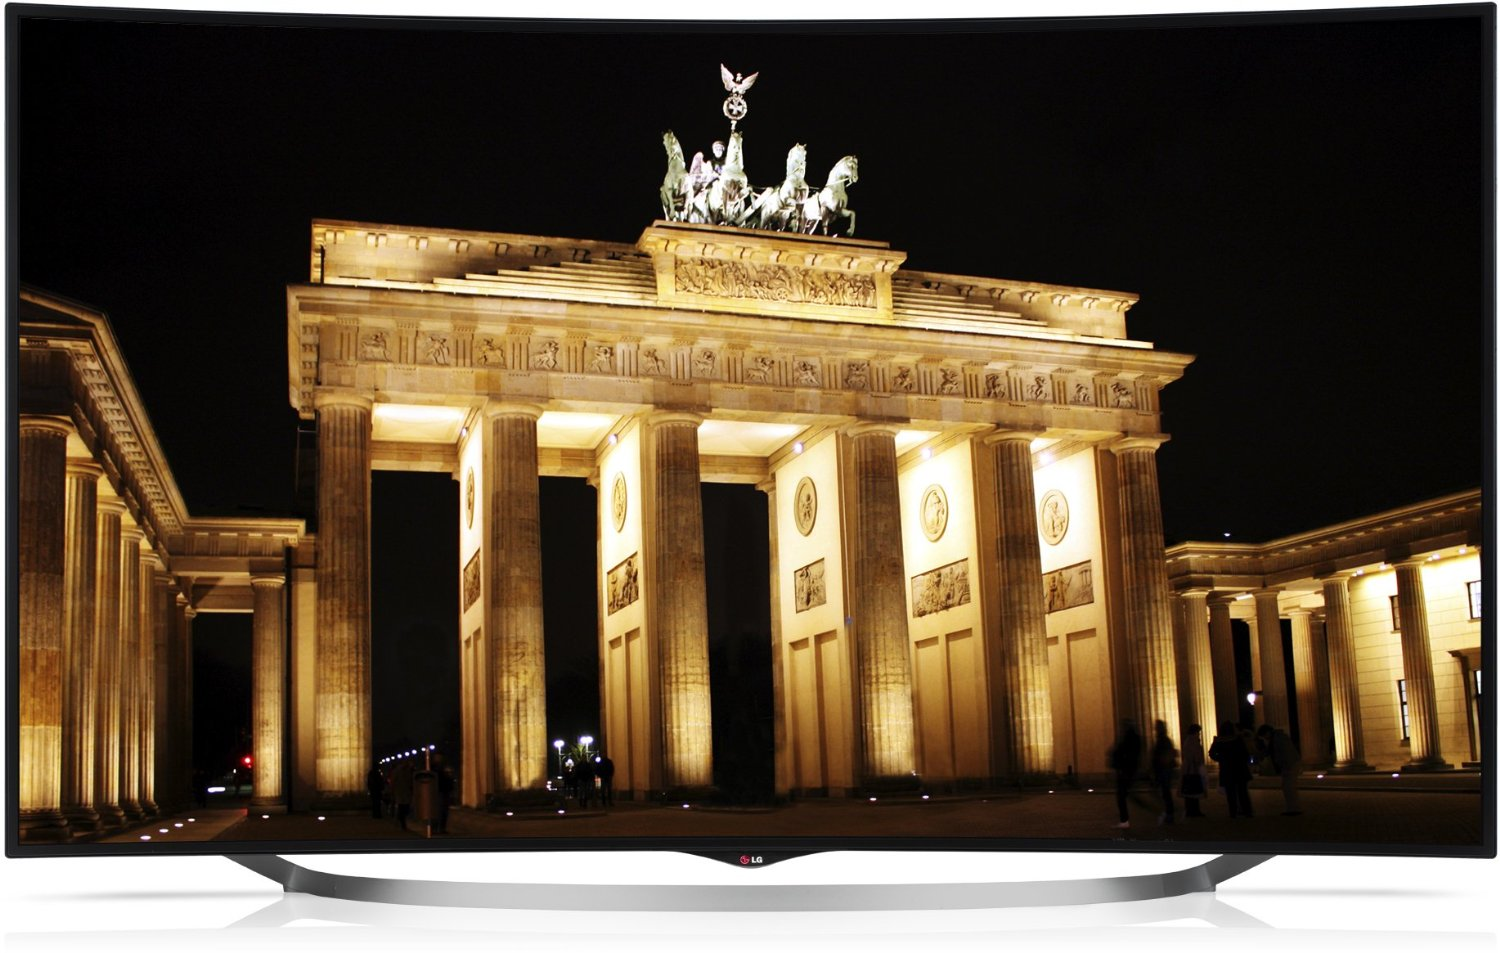 die besten 80 zoll fernseher 2016. Black Bedroom Furniture Sets. Home Design Ideas